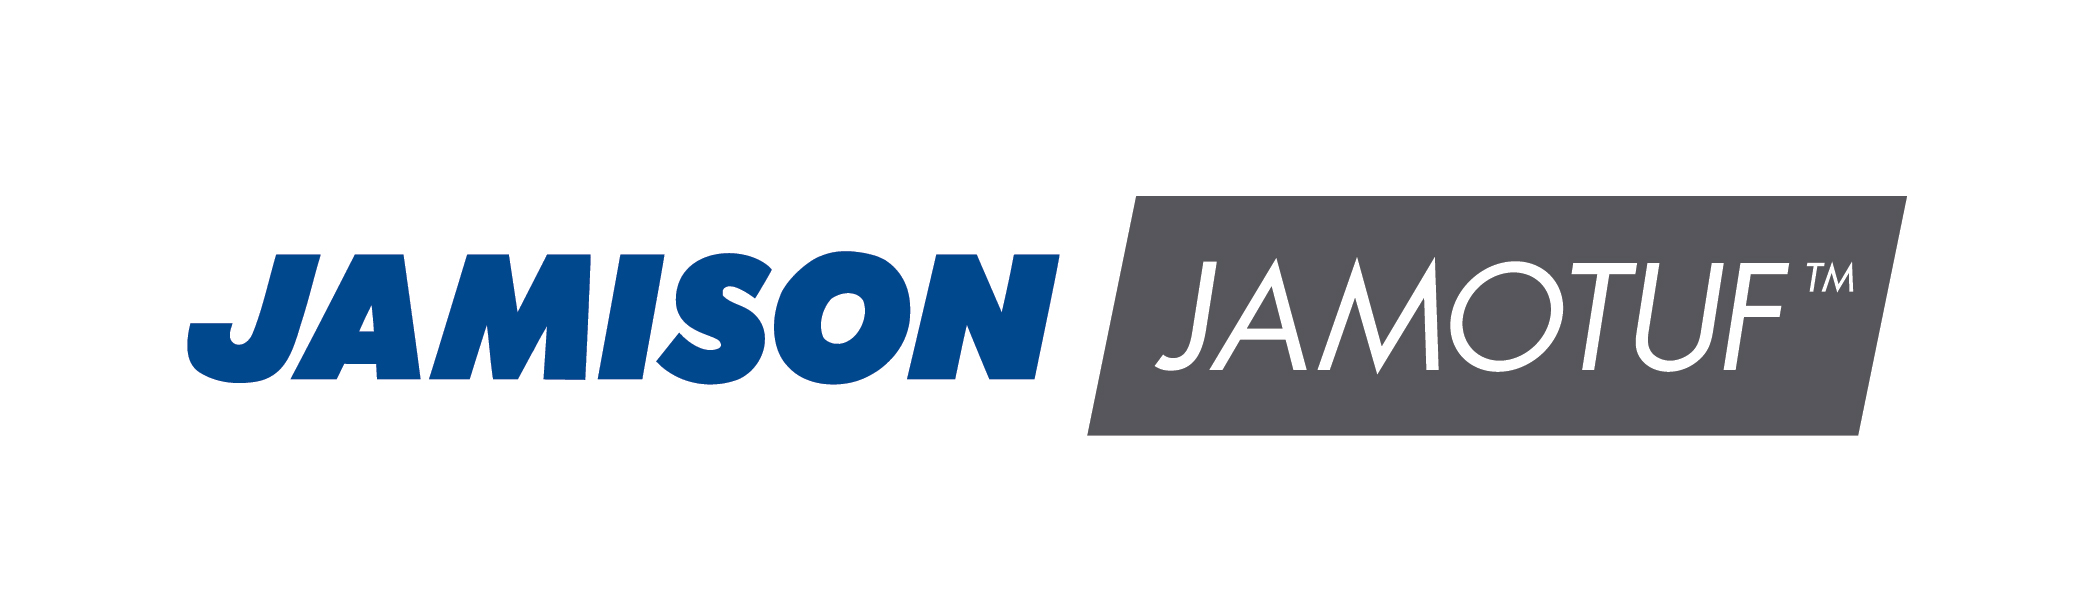 Jamotuf LogoJamotuf Is The Newest Product Line From Jamison Door, Featuring  1 3/4 Inch Insulated Molded Fiberglass Doors And Pultruded Fiberglass  Frames.